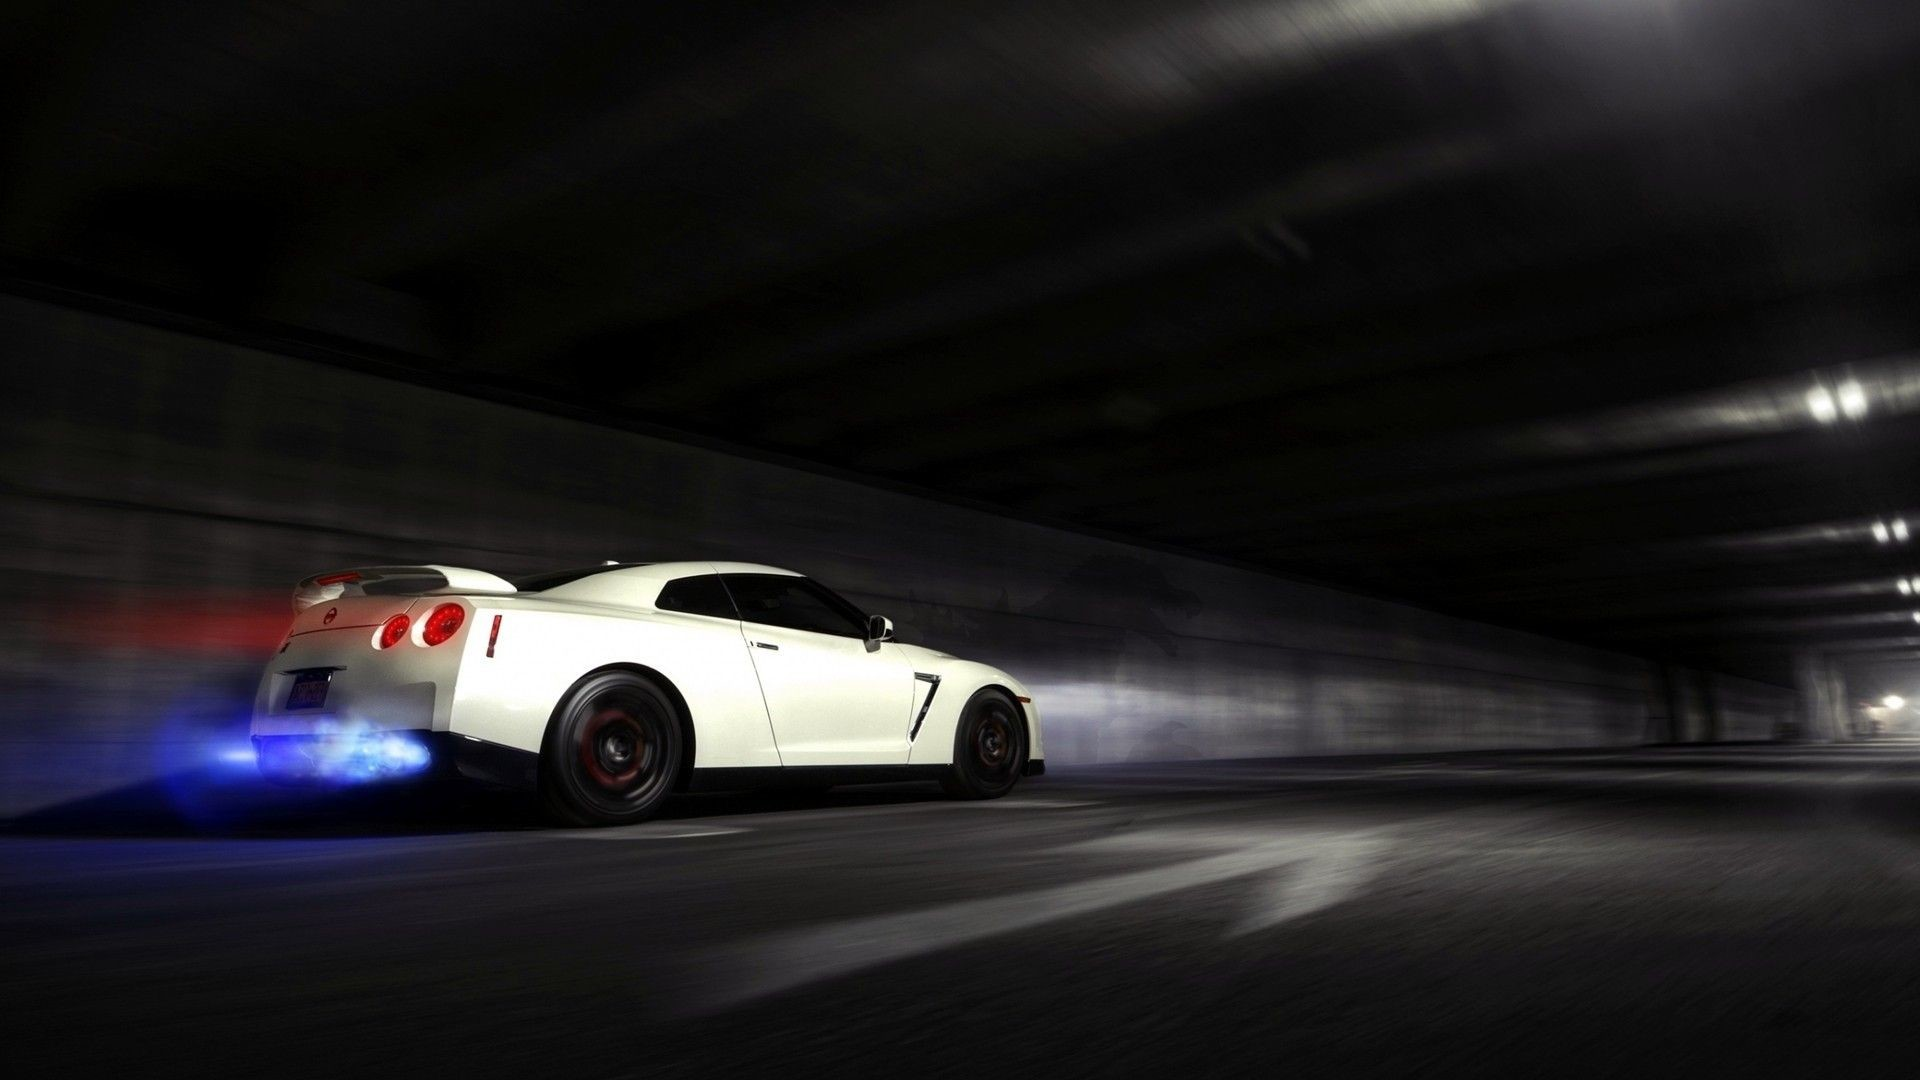 Res: 1920x1080, 30 Awesome Nissan GTR Wallpapers - HDWallSource.com